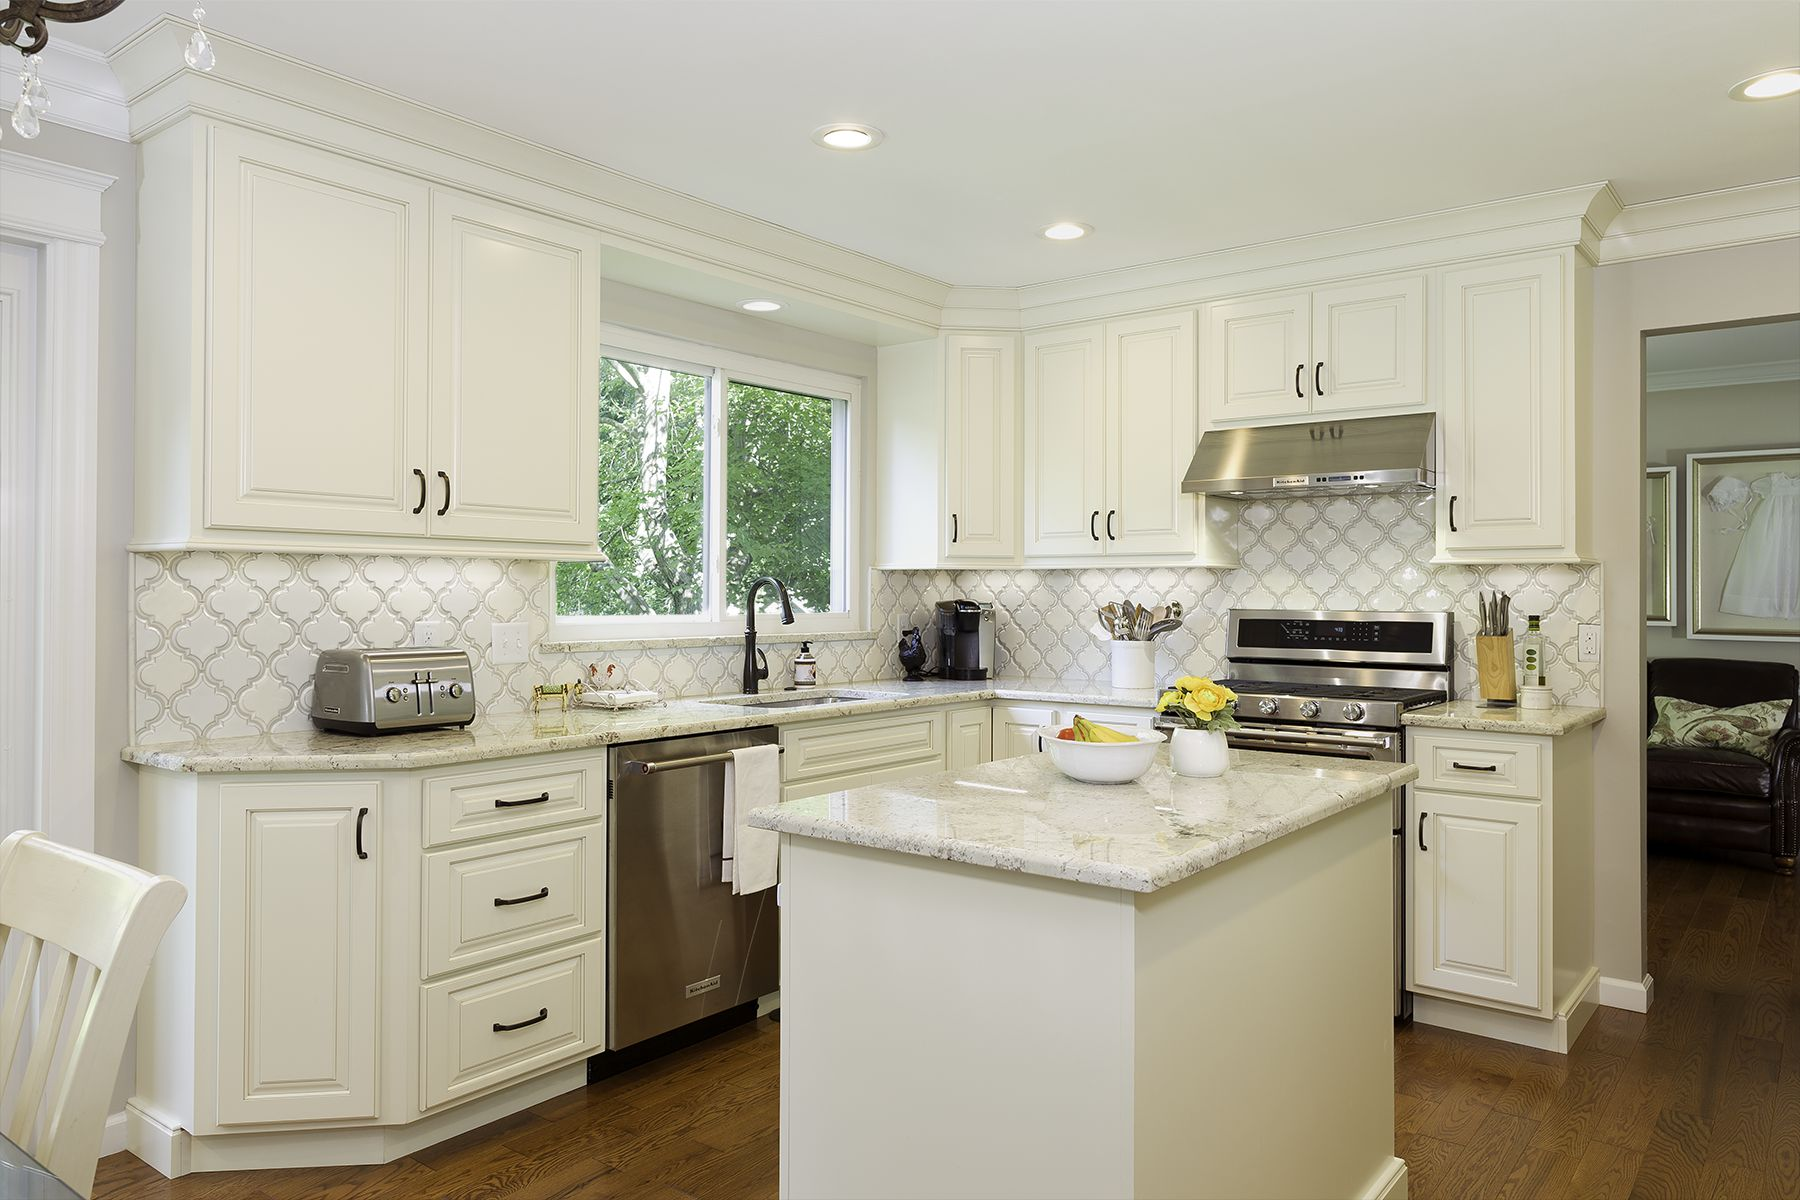 Aspect Cabinetry